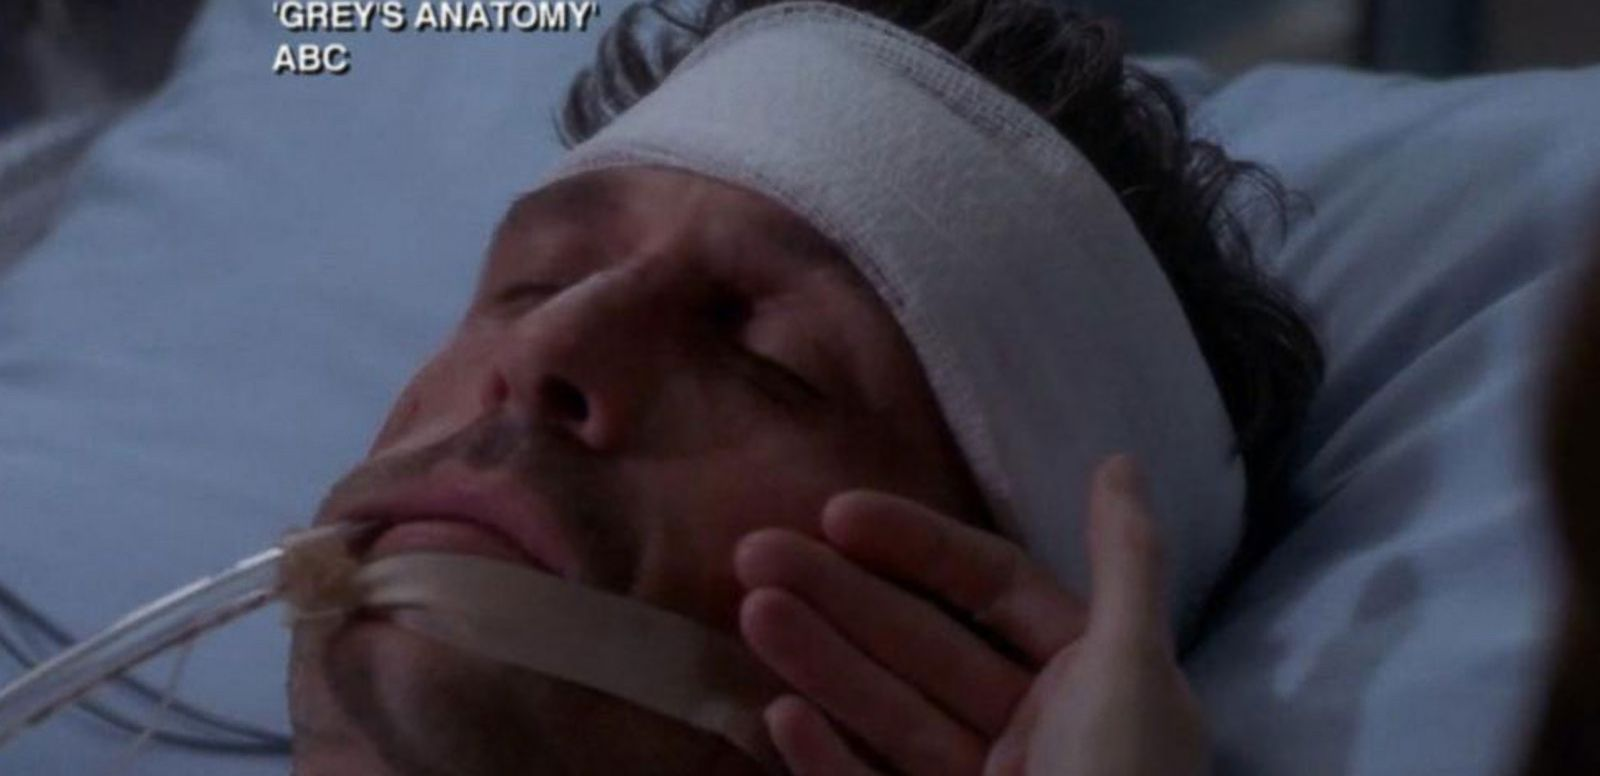 VIDEO: McDreamy's Departure From 'Grey's Anatomy' Leaves Fans Heartbroken